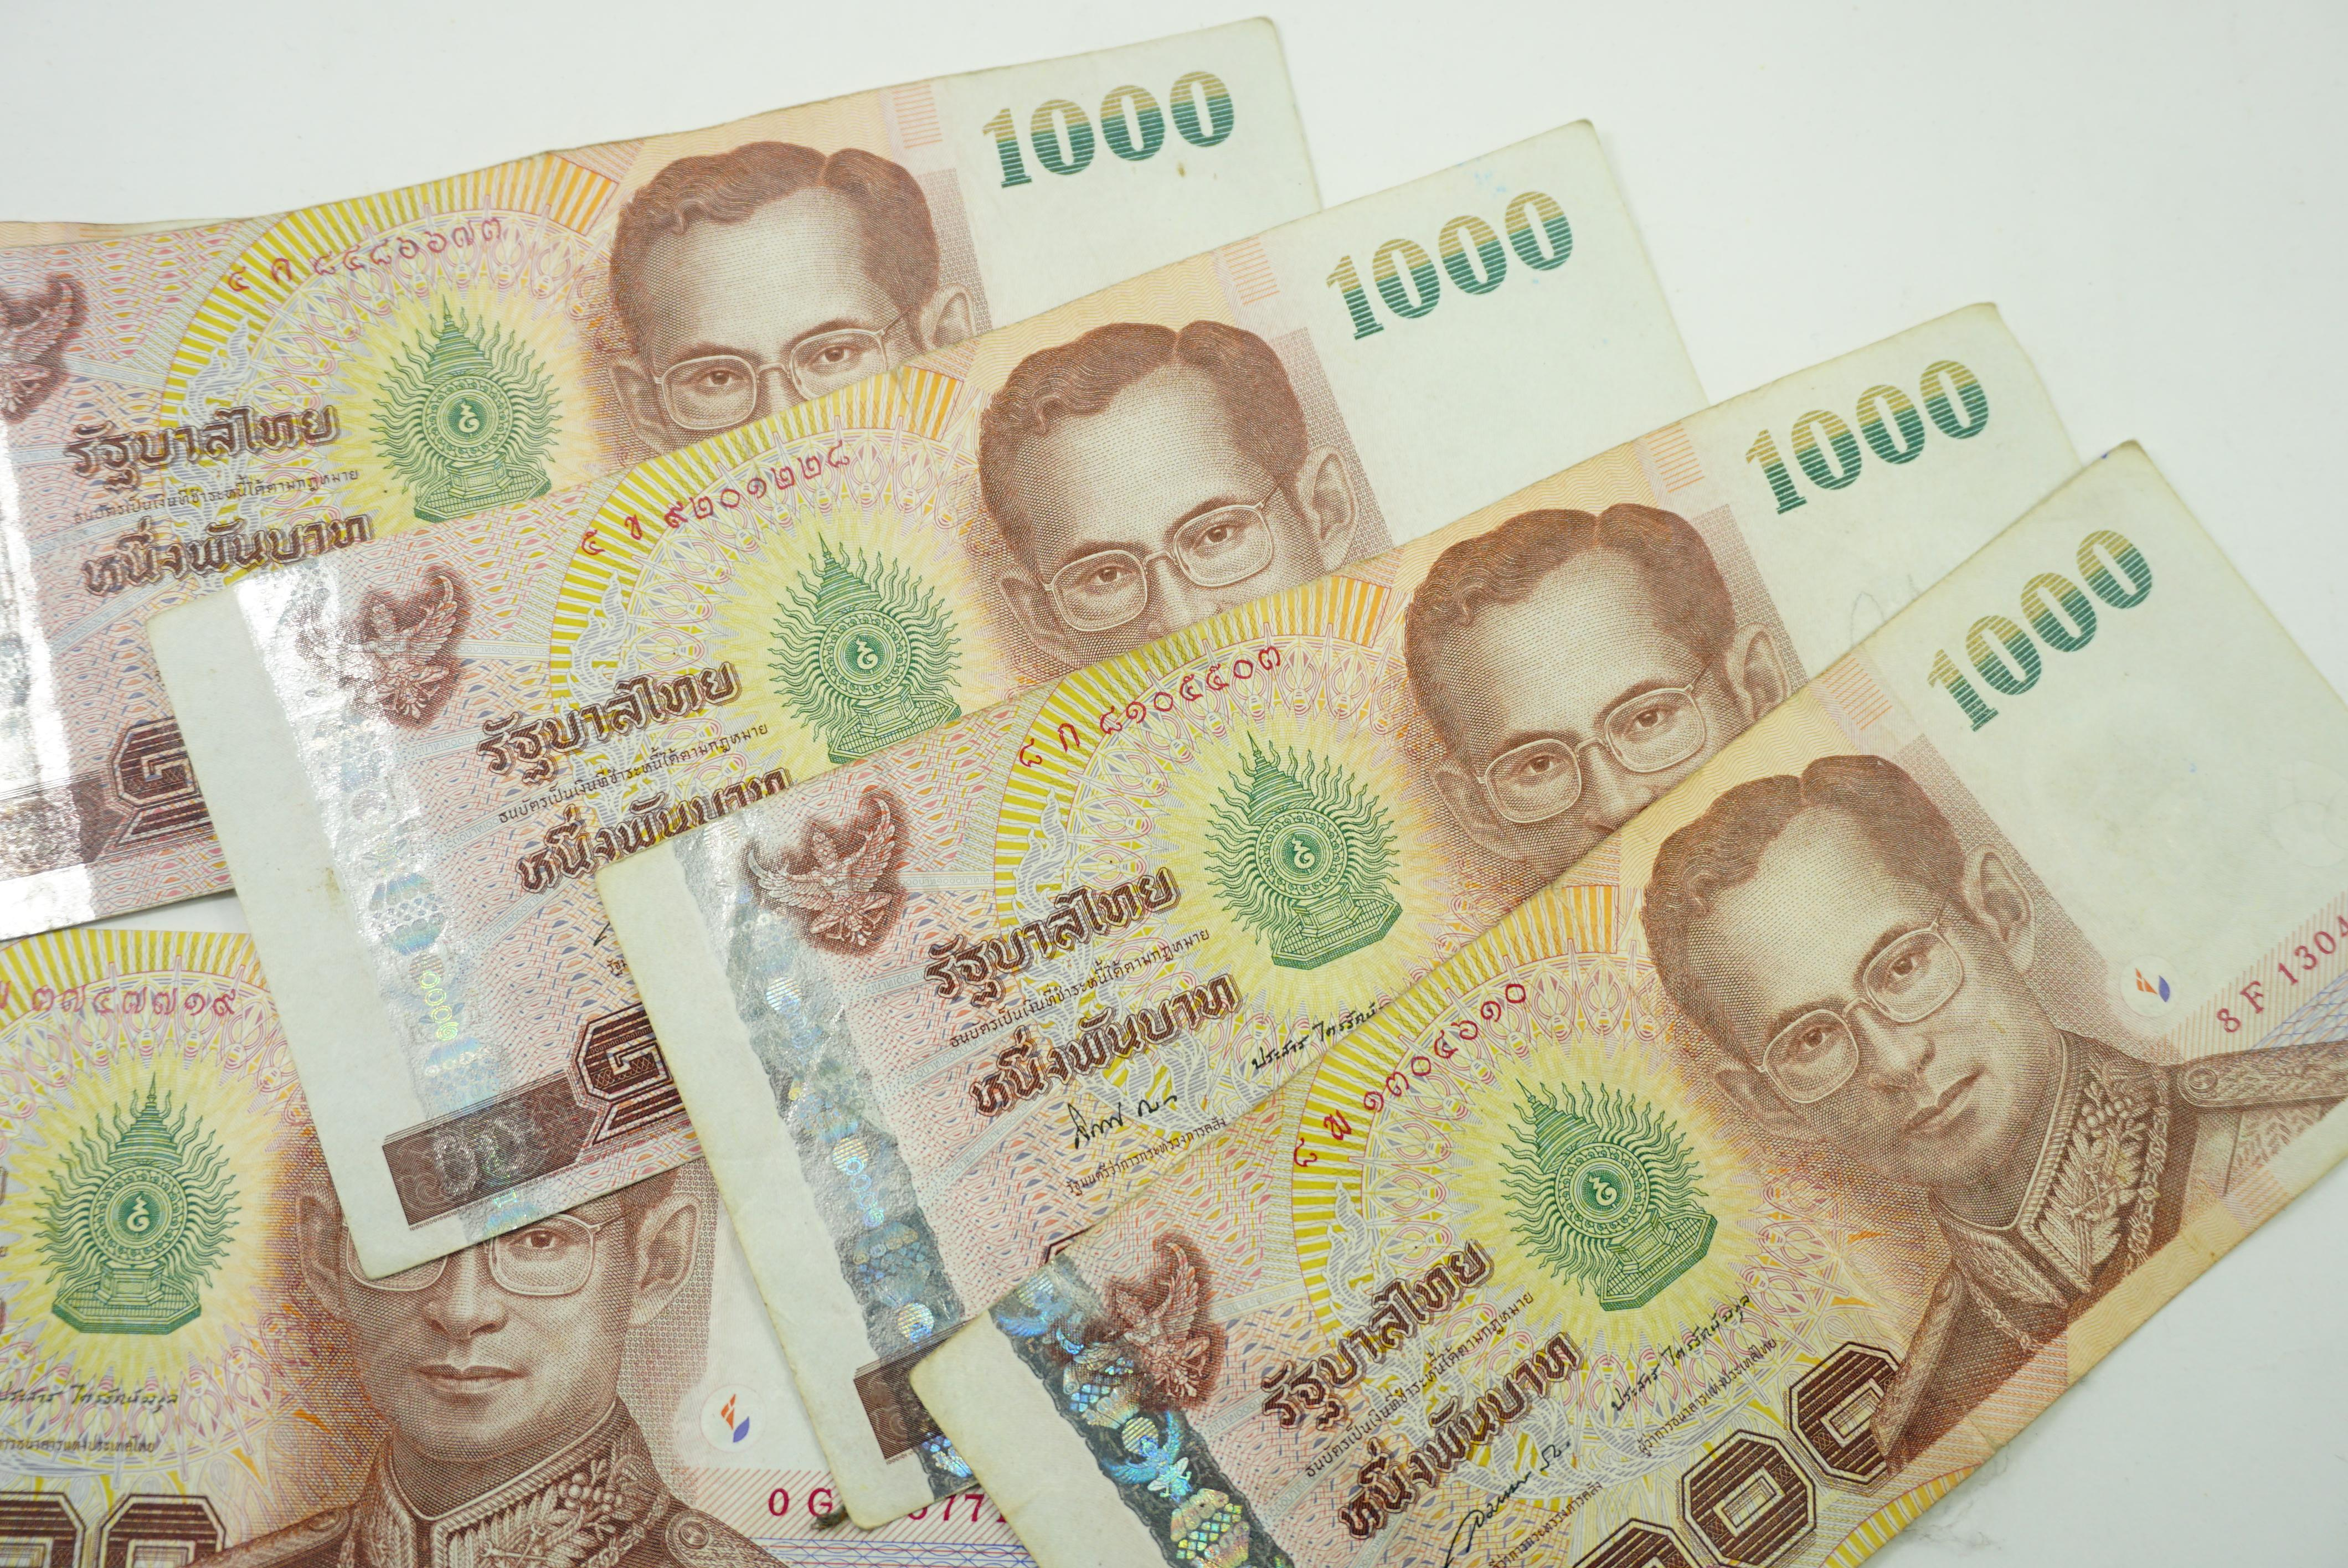 Thailand central bank's baht